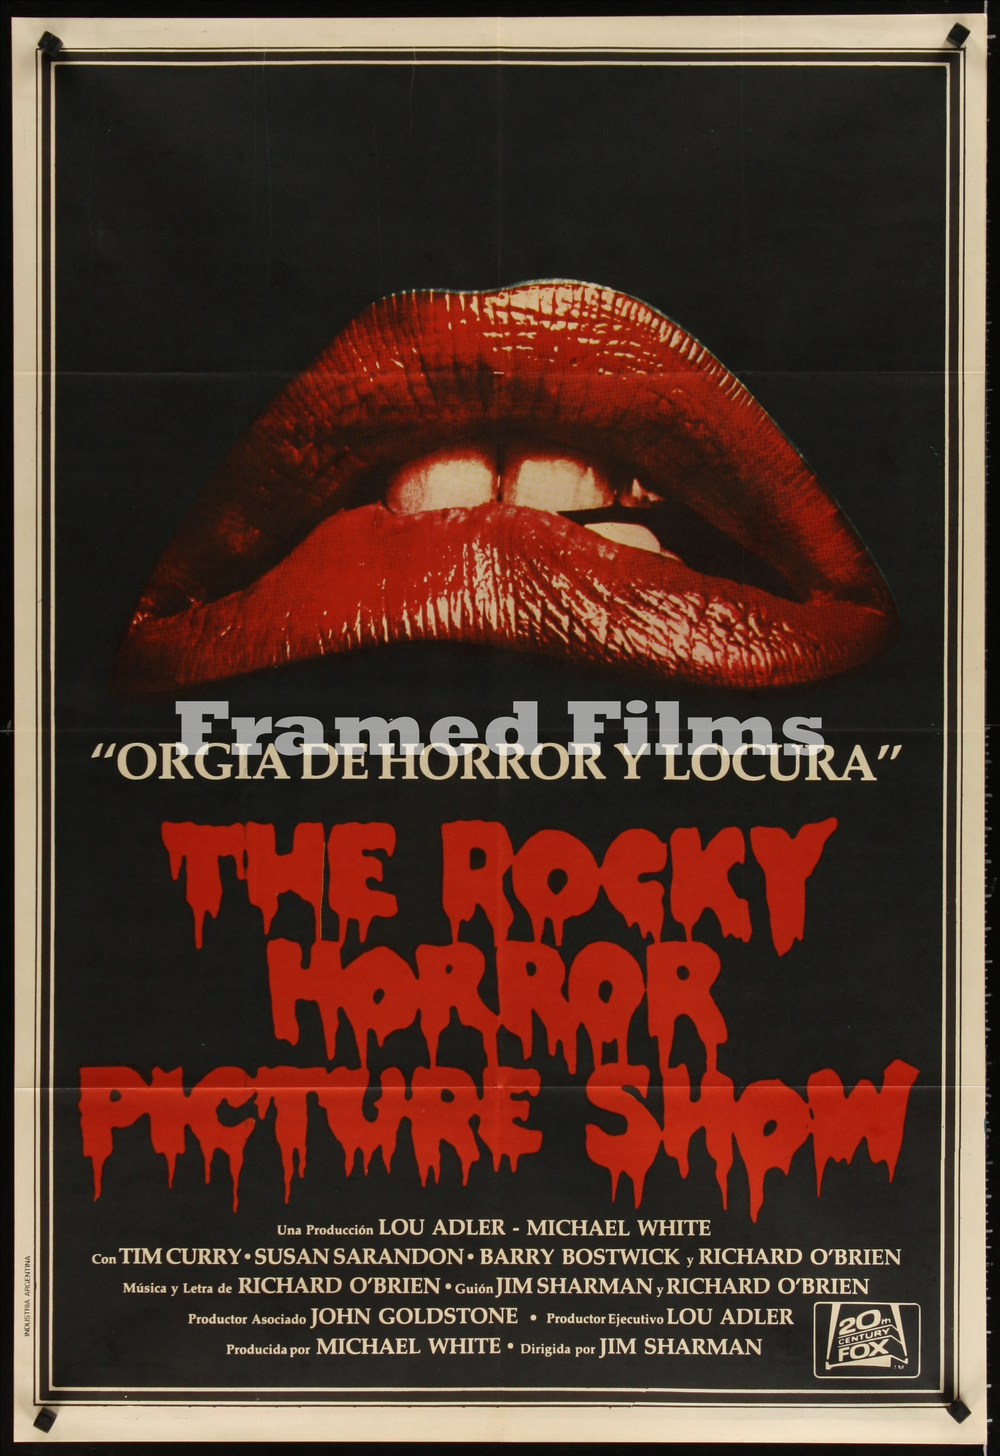 argentinean_rocky_horror_picture_show_JC06357_L.jpg